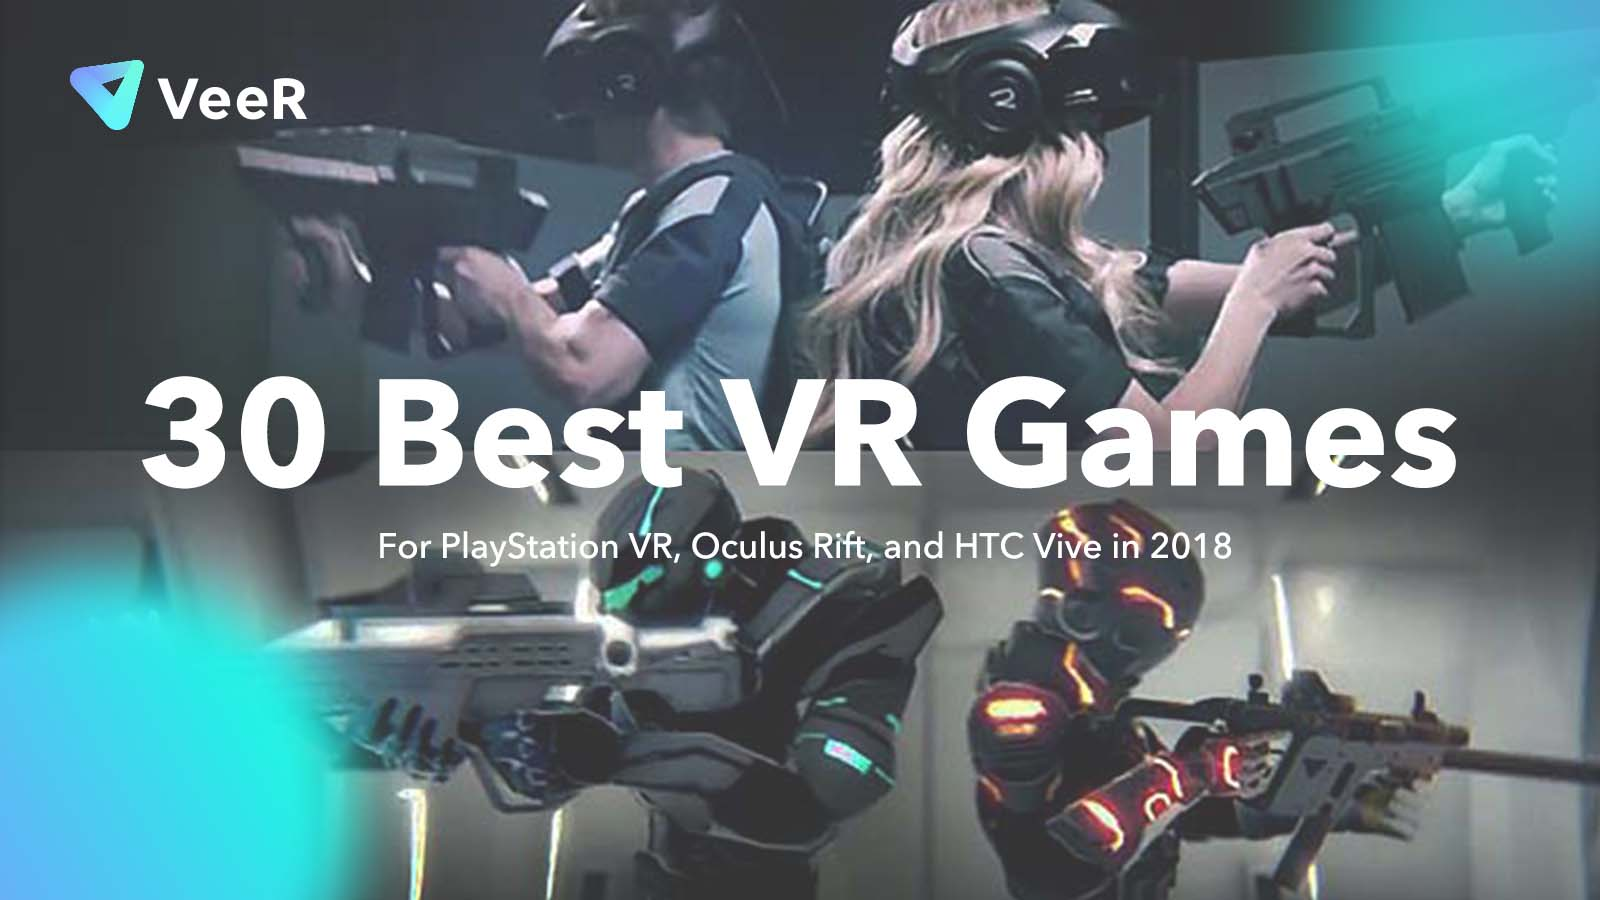 30 Best VR Games for PlayStation VR, Oculus Rift, and HTC Vive in 2018